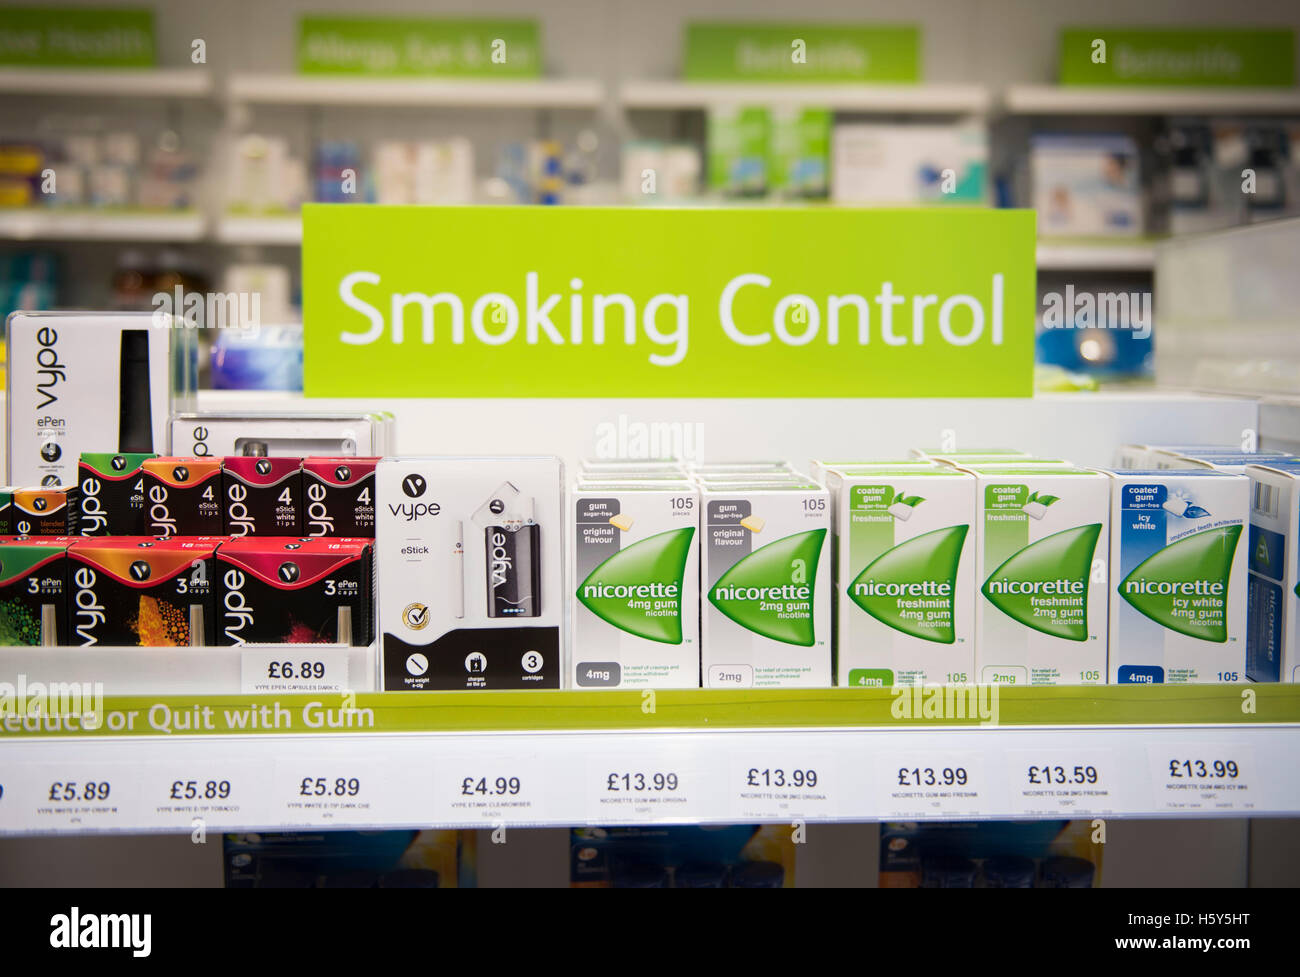 Nicorette quit smoking product patches and gum on sale on a shelf in a chemist store. - Stock Image